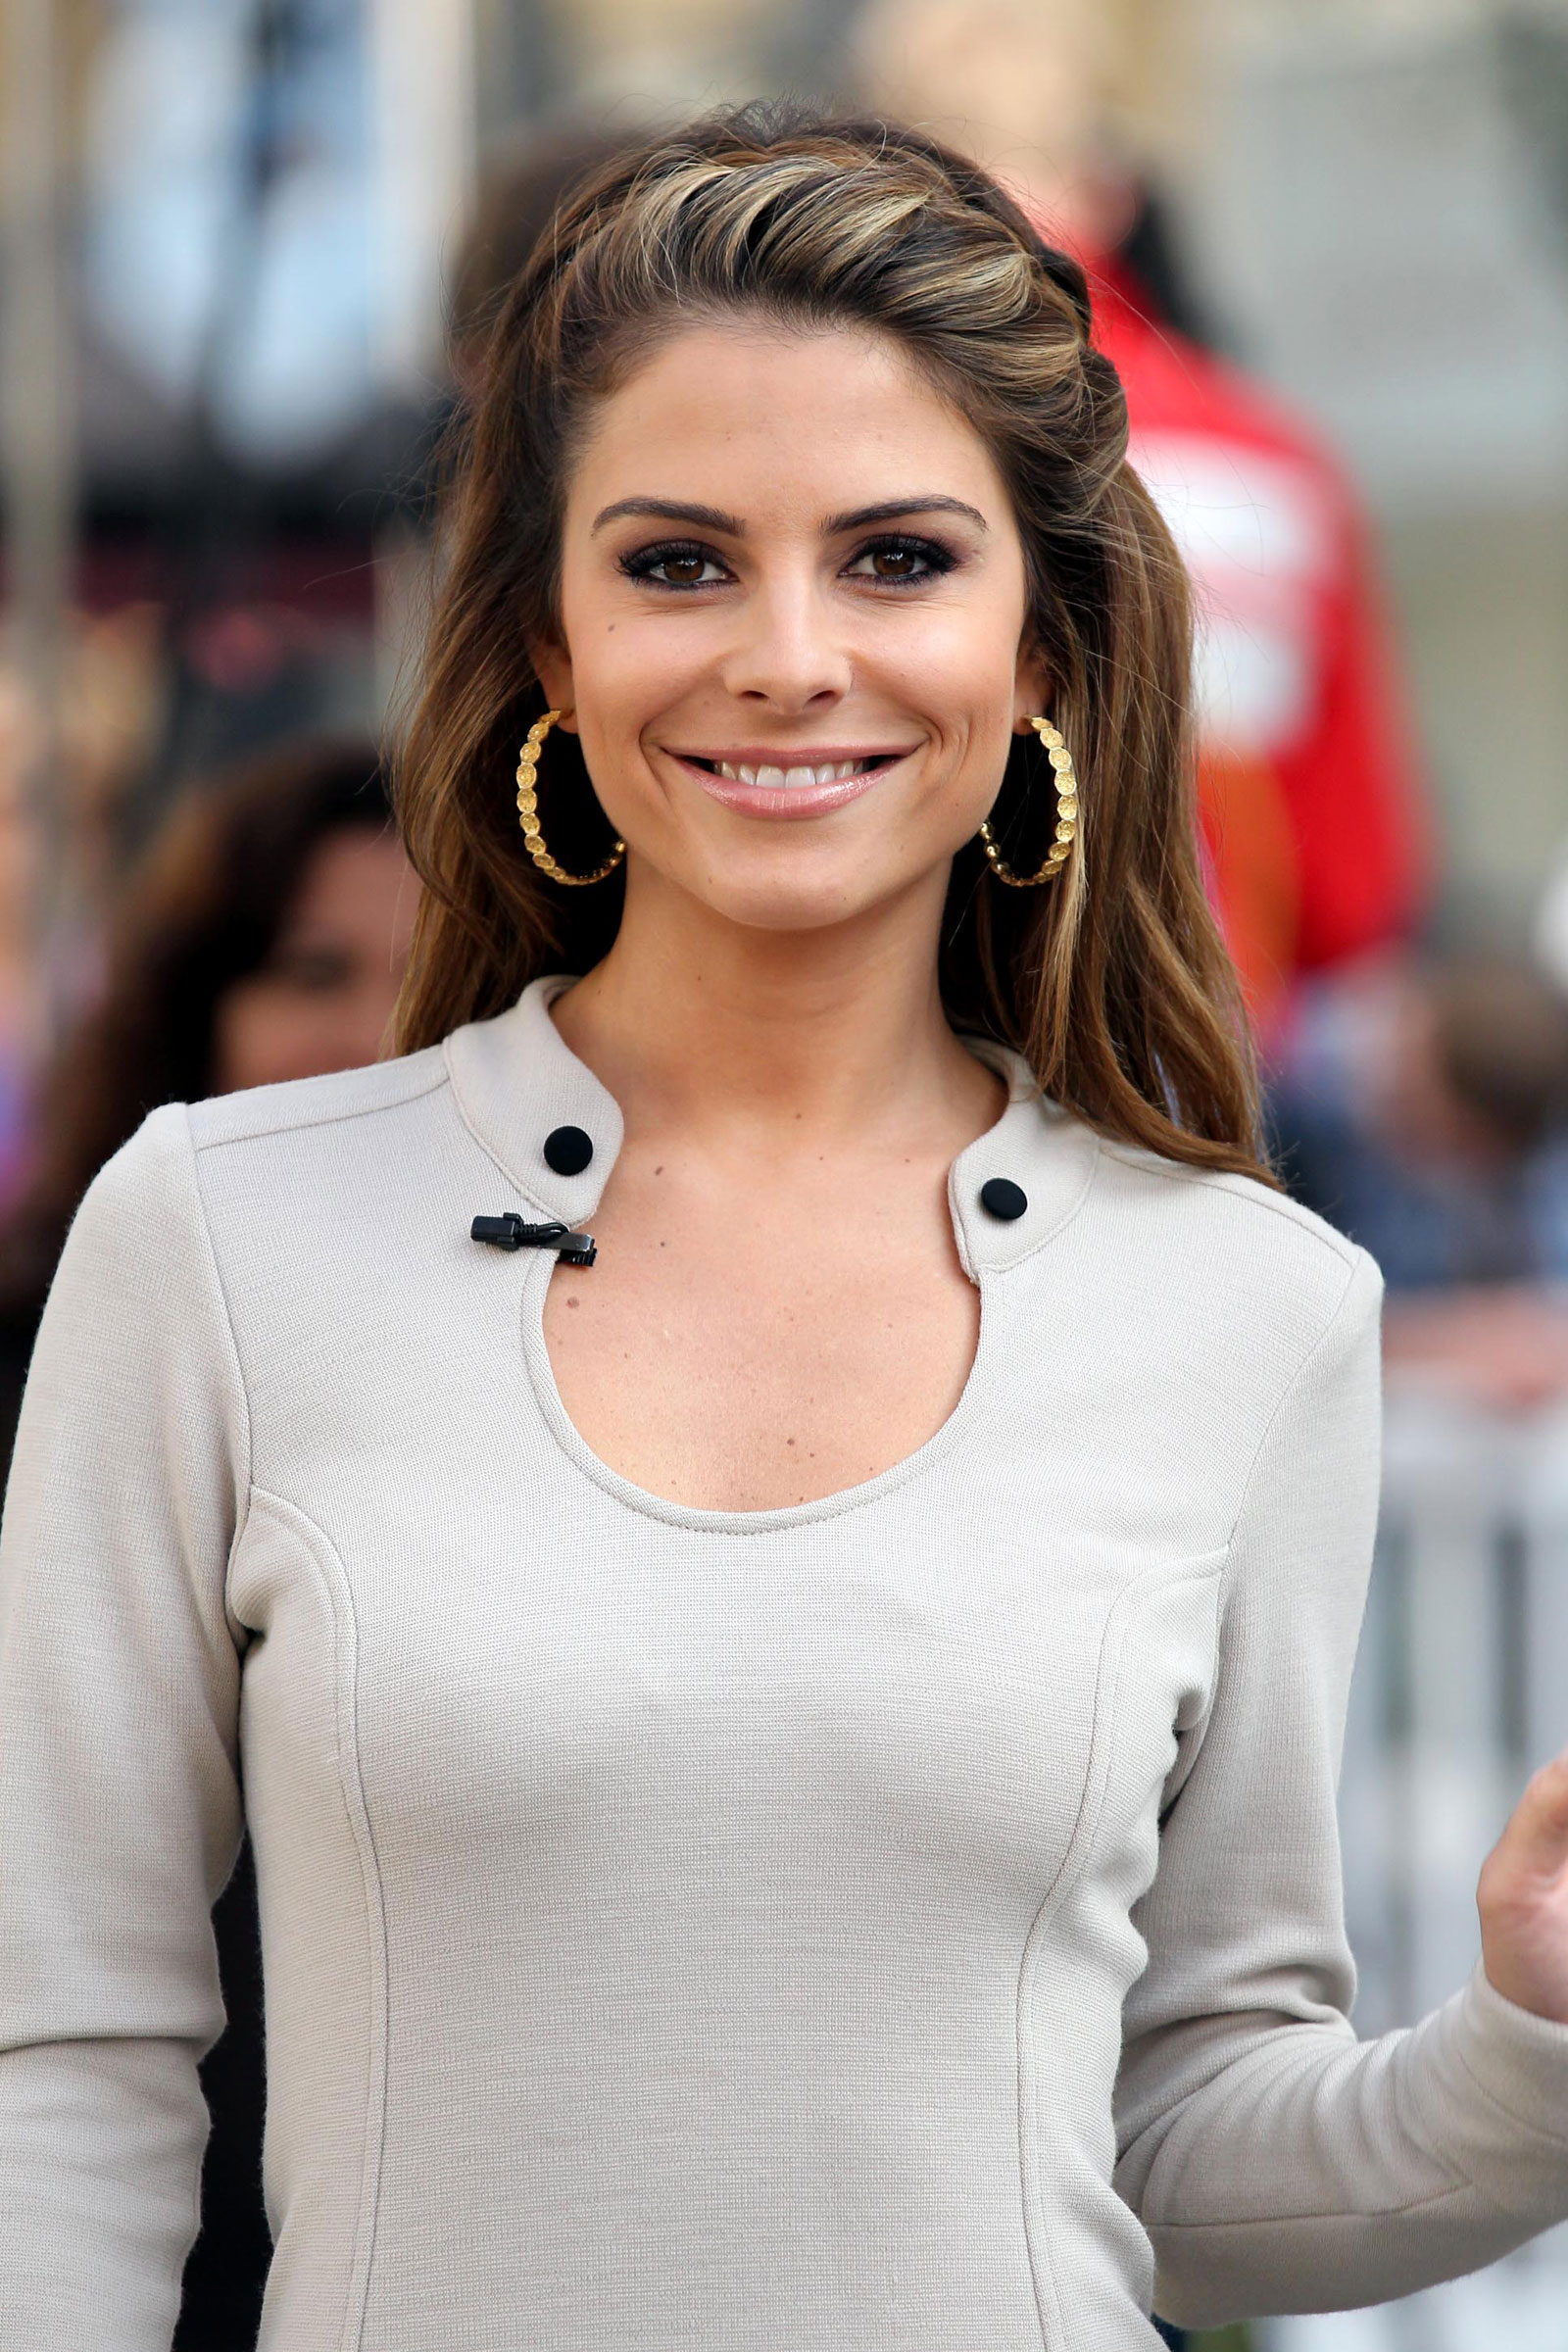 maria menounos smilemaria menounos vk, maria menounos 2016, maria menounos forum, maria menounos wiki, maria menounos howard stern show, maria menounos wrestling, maria menounos dancing with the stars, maria menounos jeans, maria menounos vs, maria menounos red dress, maria menounos smile, maria menounos superiorpics, maria menounos instagram, maria menounos boyfriend, maria menounos wwe, maria menounos leather pants, maria menounos 2014 oscars hair, maria menounos shoe size, maria menounos bellazon, maria menounos height and weight